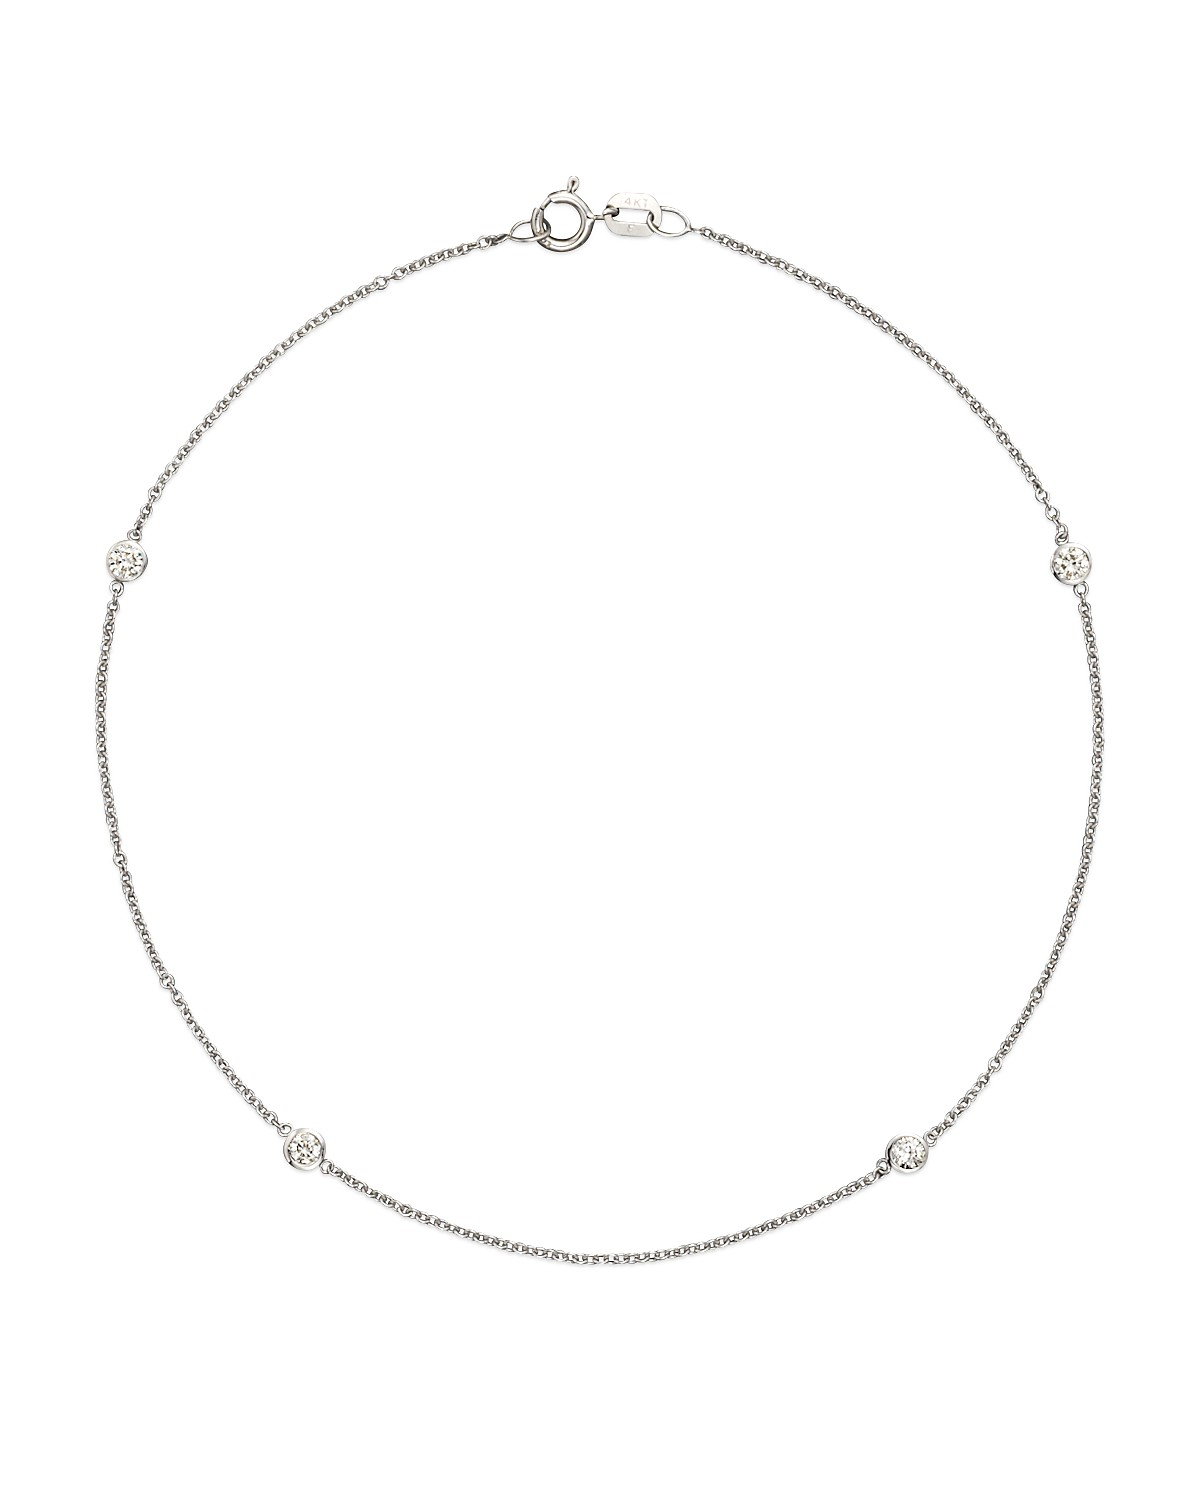 bracelet tennis bracelets jewelry classic with gold diamond design in anklet wg white nl